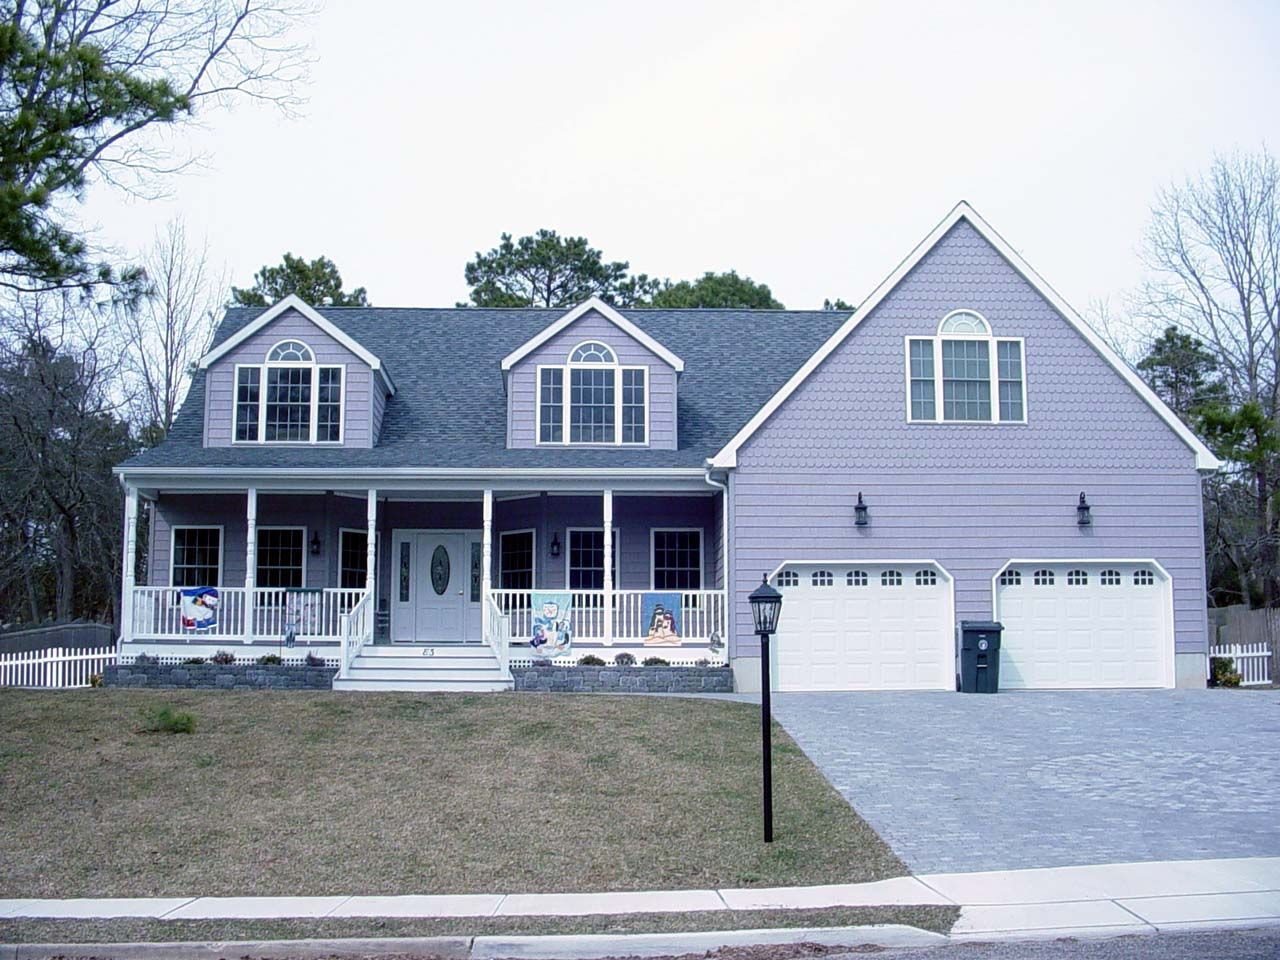 Cape cod style home with farmers porch two car garage and for Cape cod style house additions